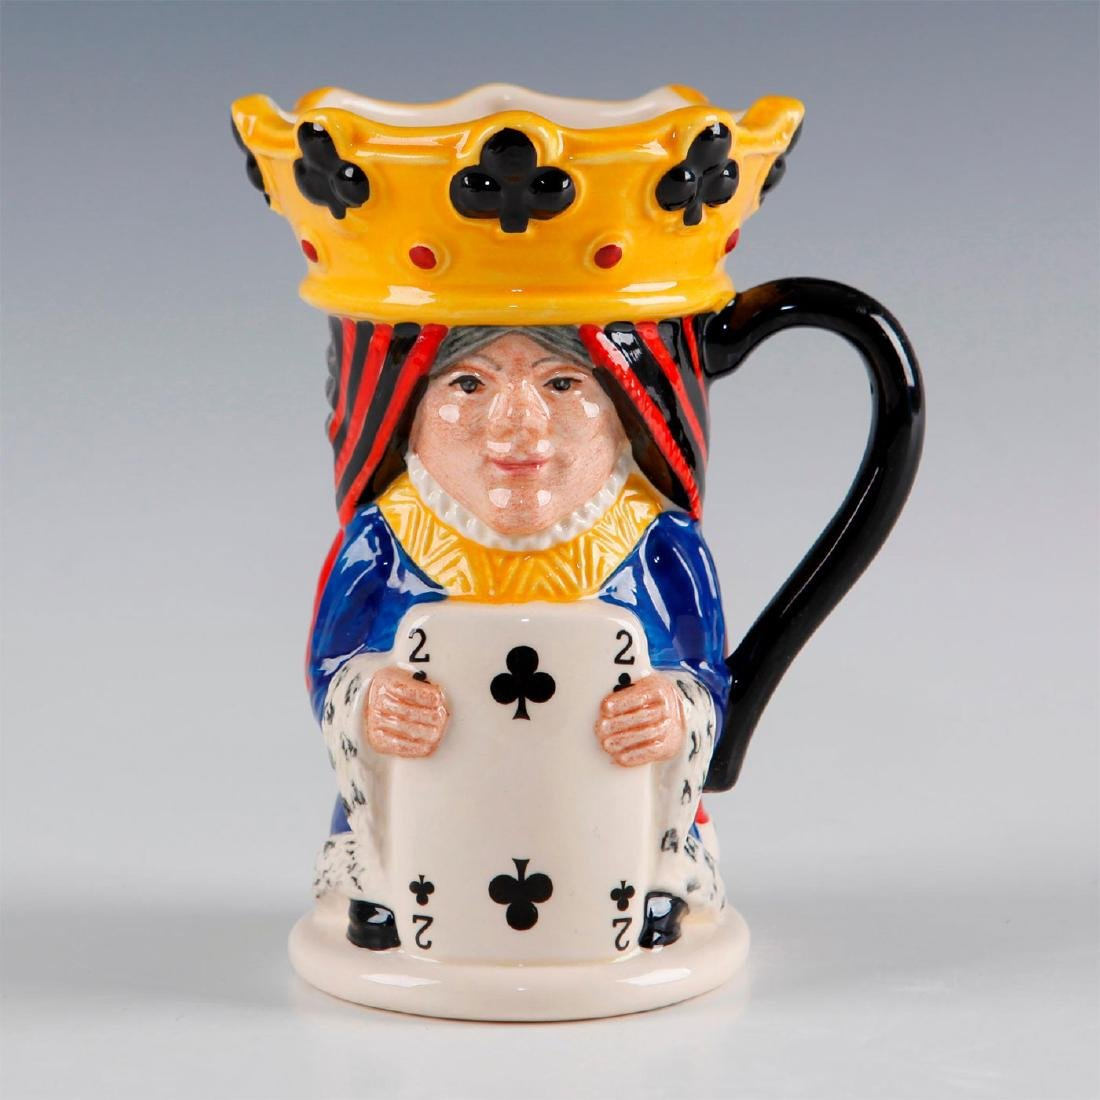 ROYAL DOULTON TOBY JUG KING AND QUEEN OF CLUBS D6999